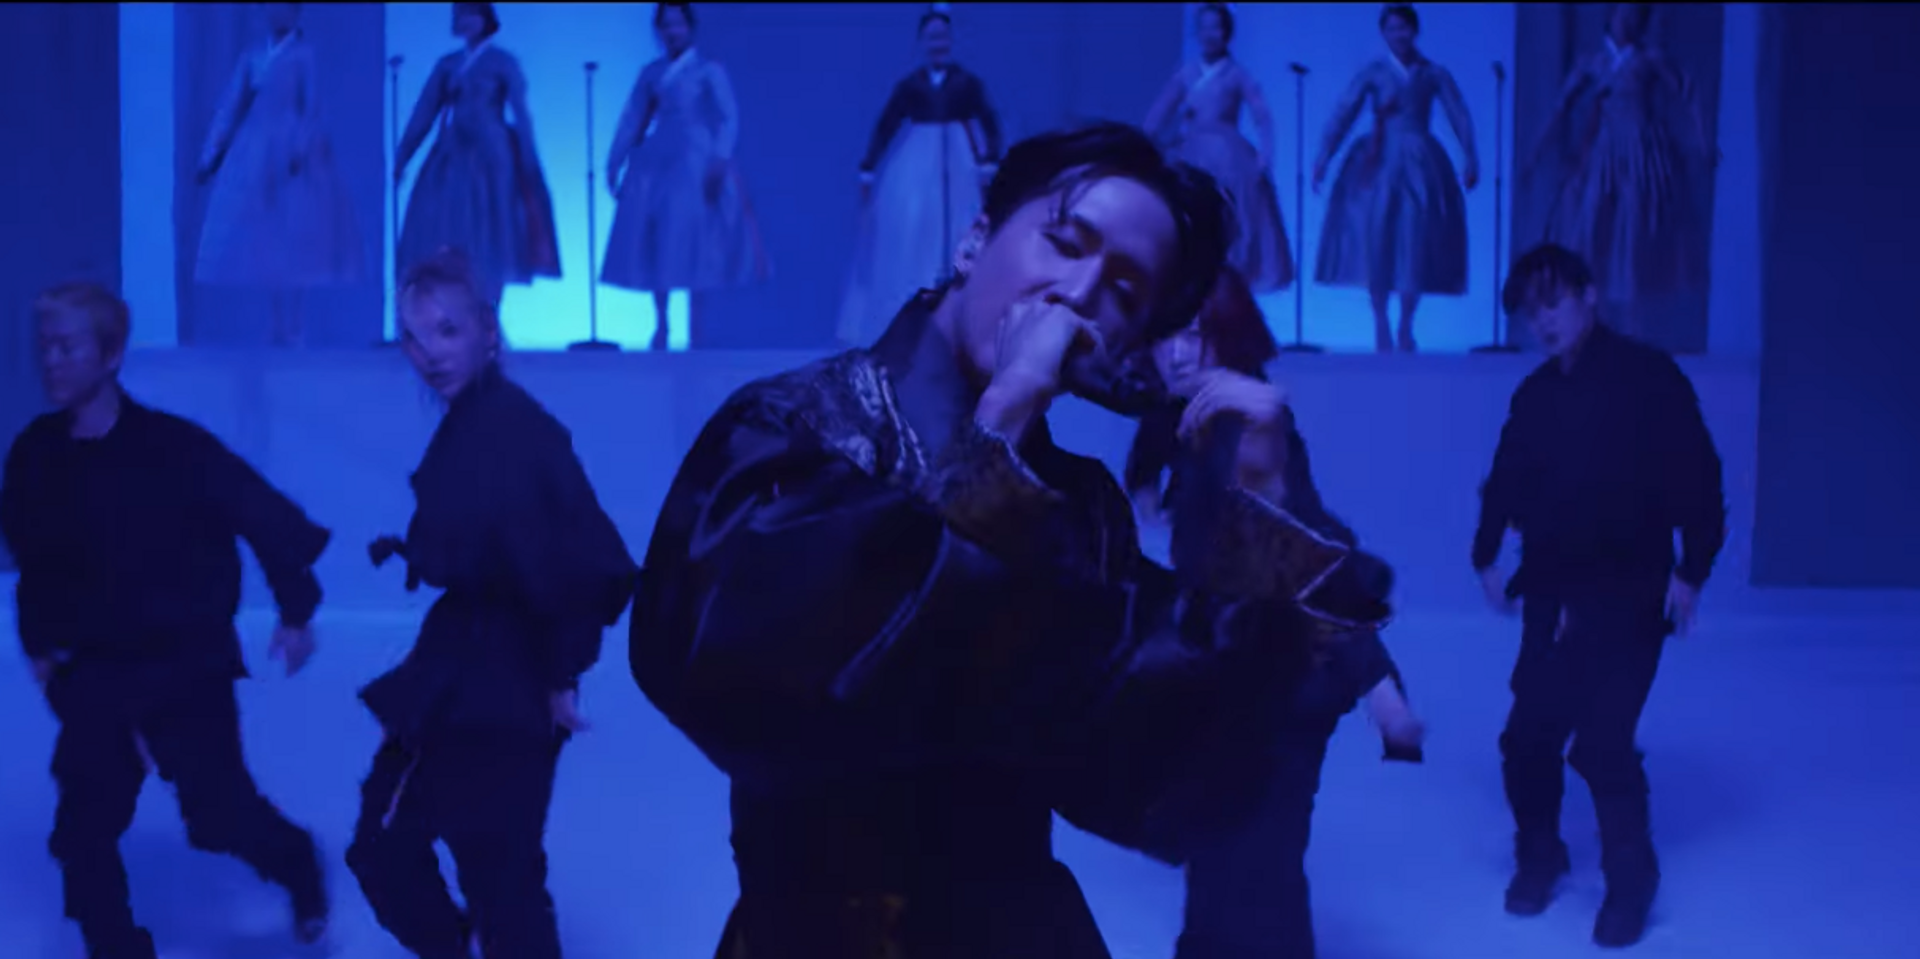 RAVI showcases Korean culture in performance video of 'Tiger' featuring Chillin Homie and Kid Milli – watch